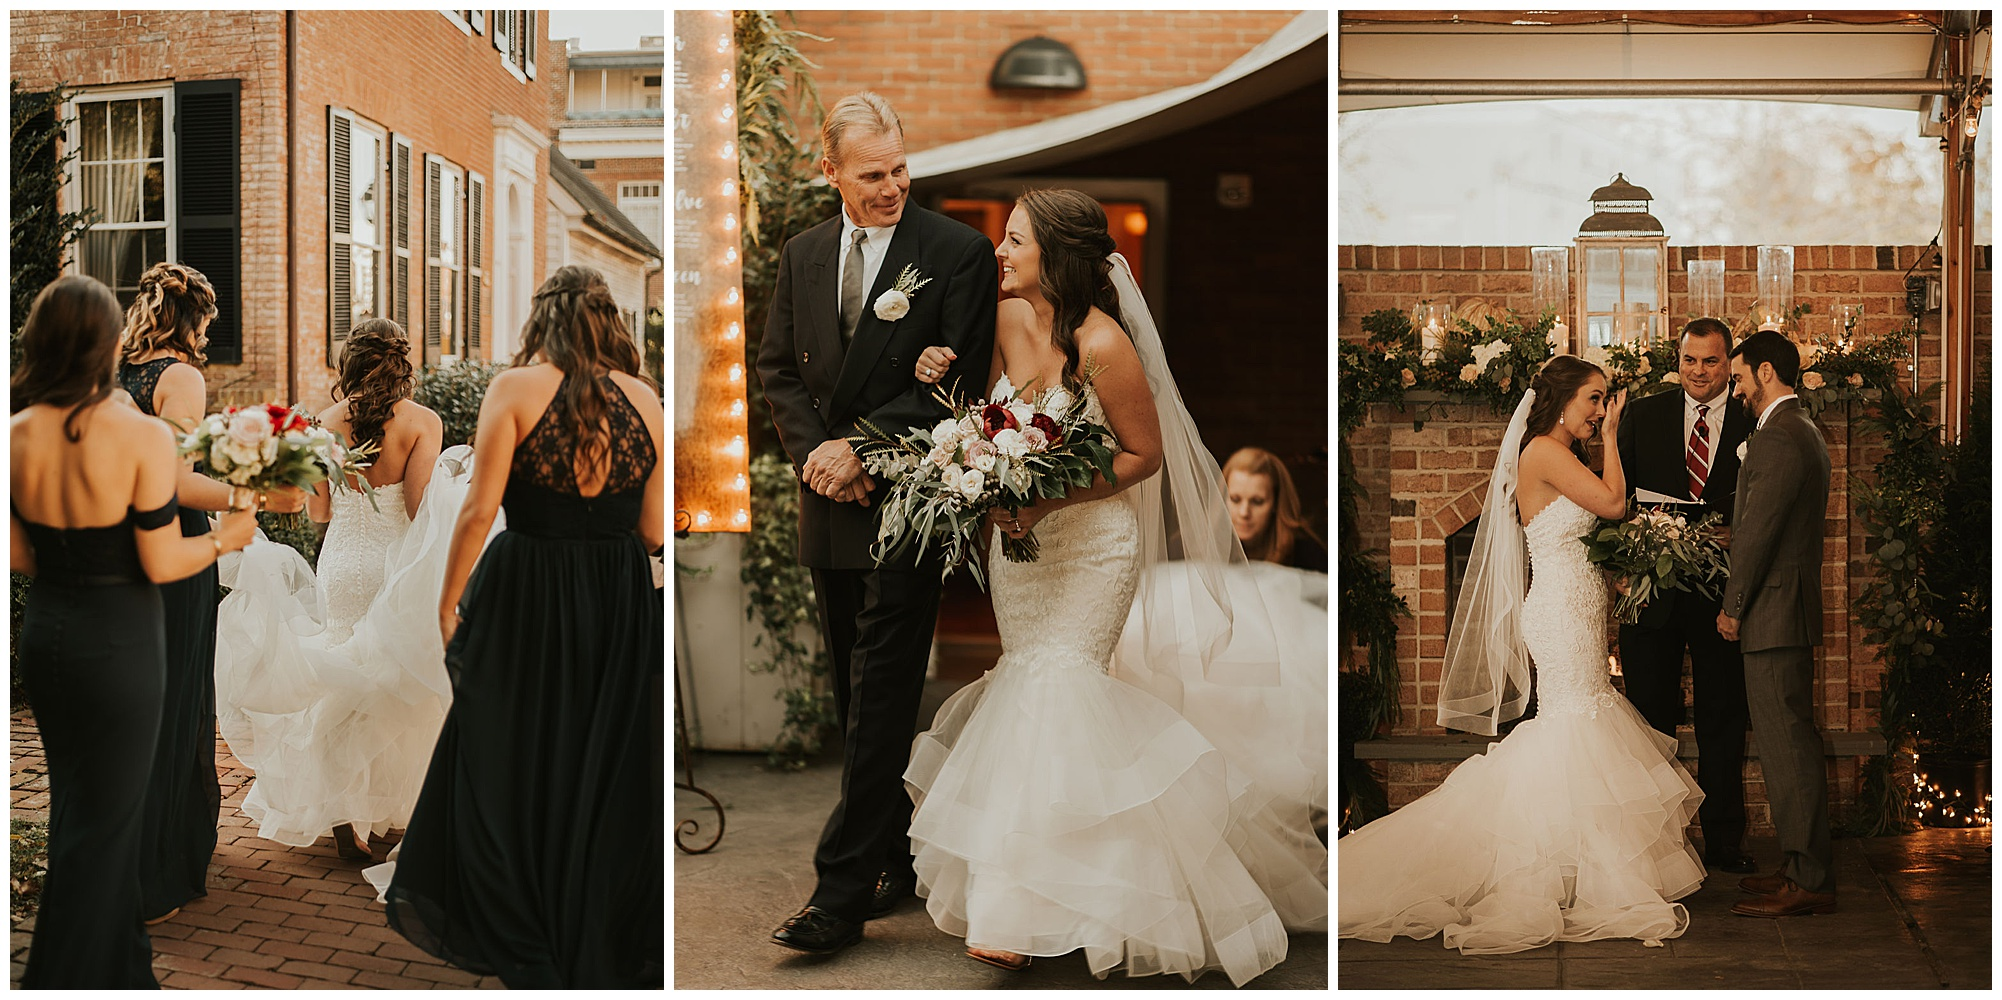 elegant glamorous fun chic romantic coastal wedding inspo at the tidewater inn wedding in the fall autumn now featured on my eastern shore wedding.